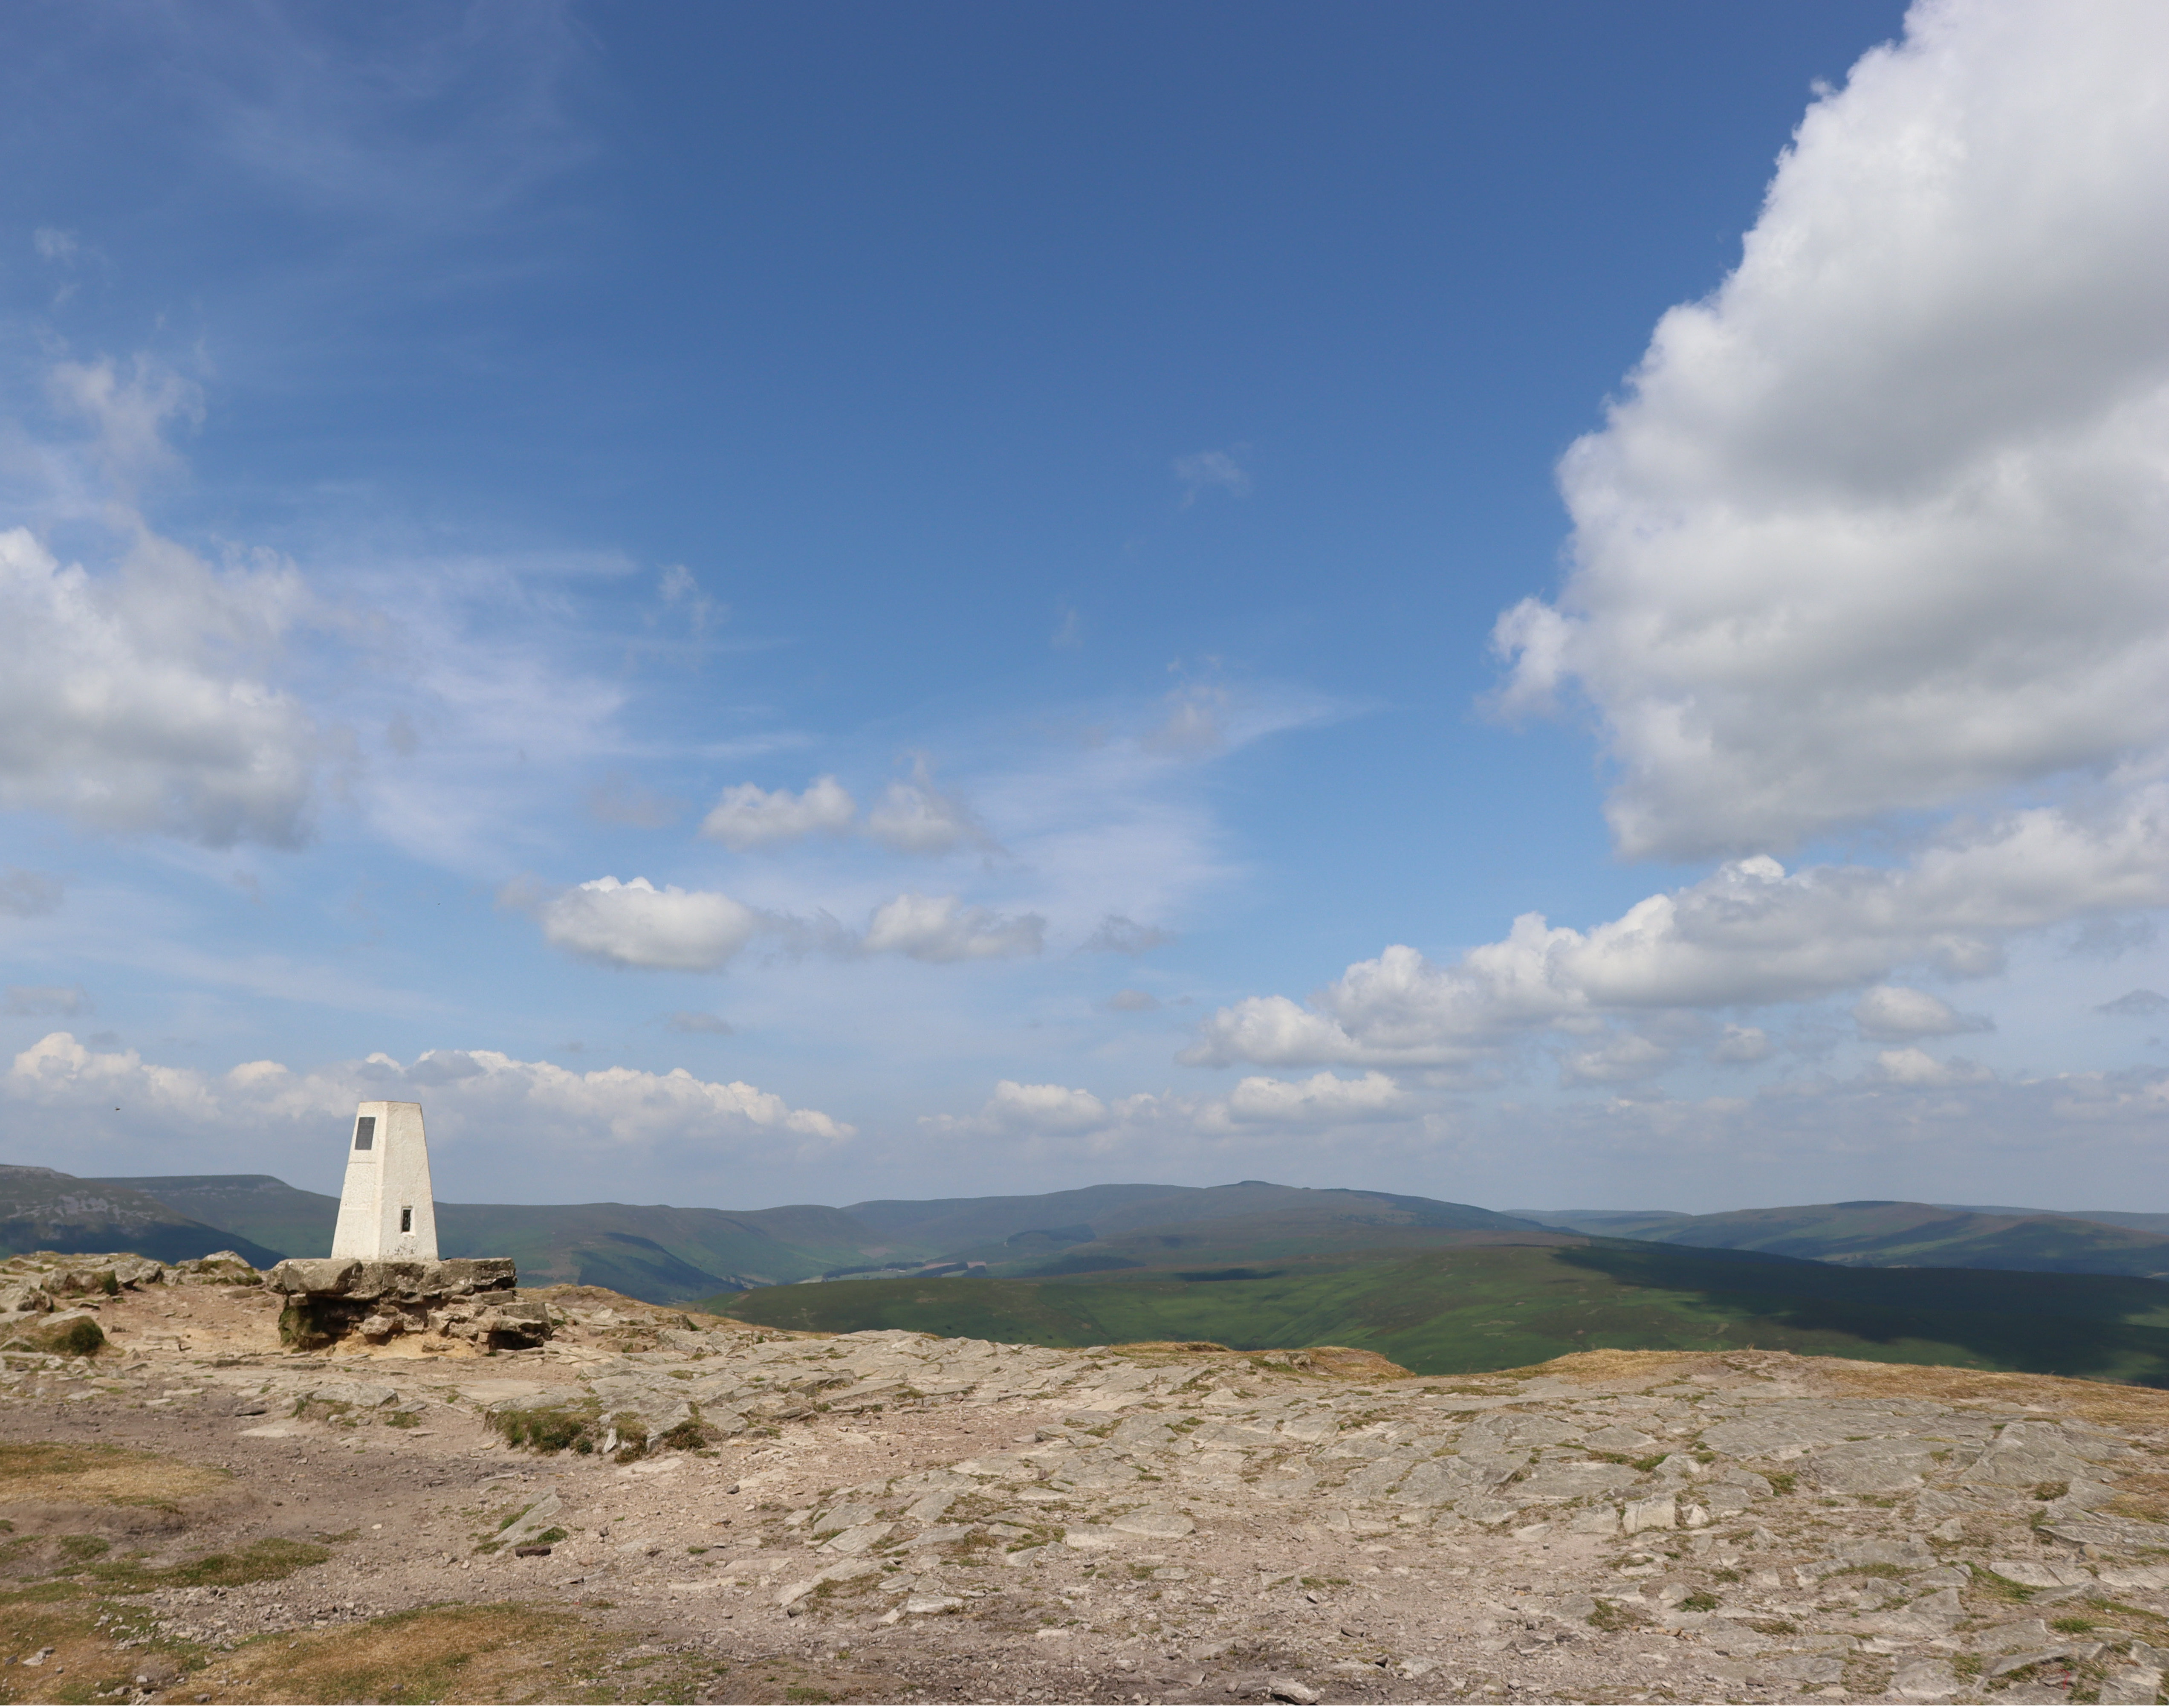 Trigpoint at the top of sugar loaf mountain.